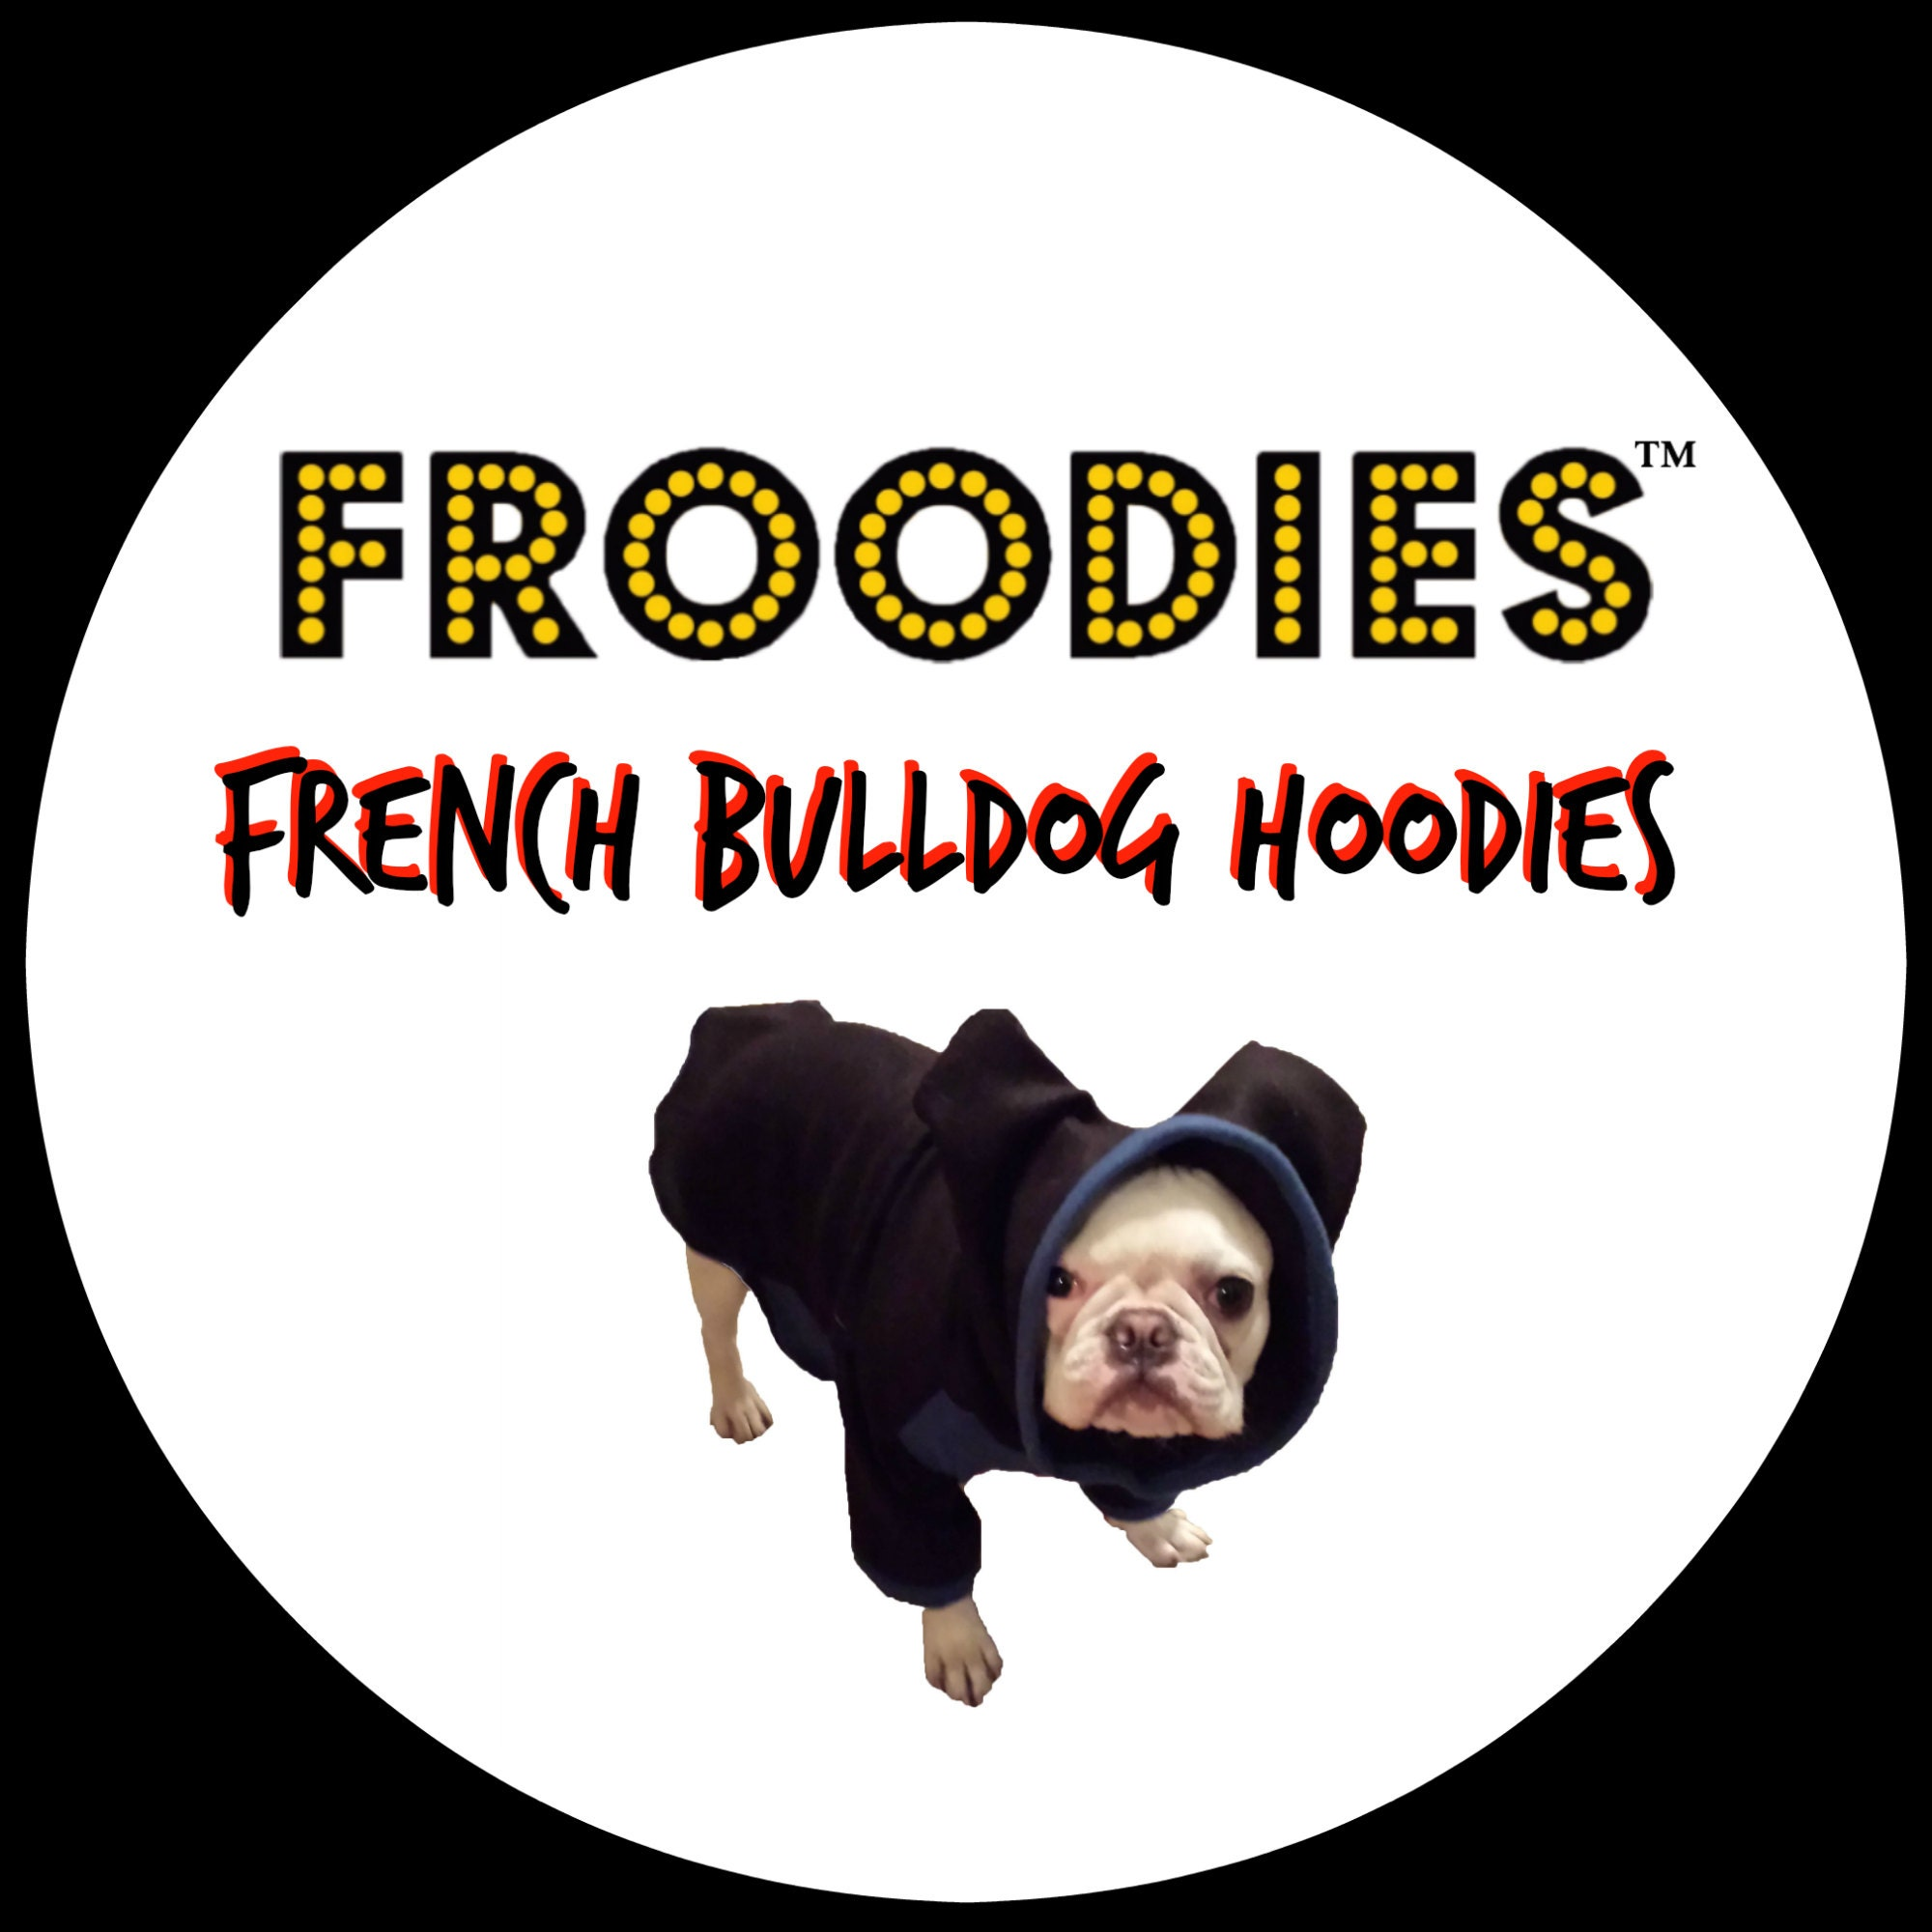 costume dog hoodies french bulldog boston by froodieshoodies